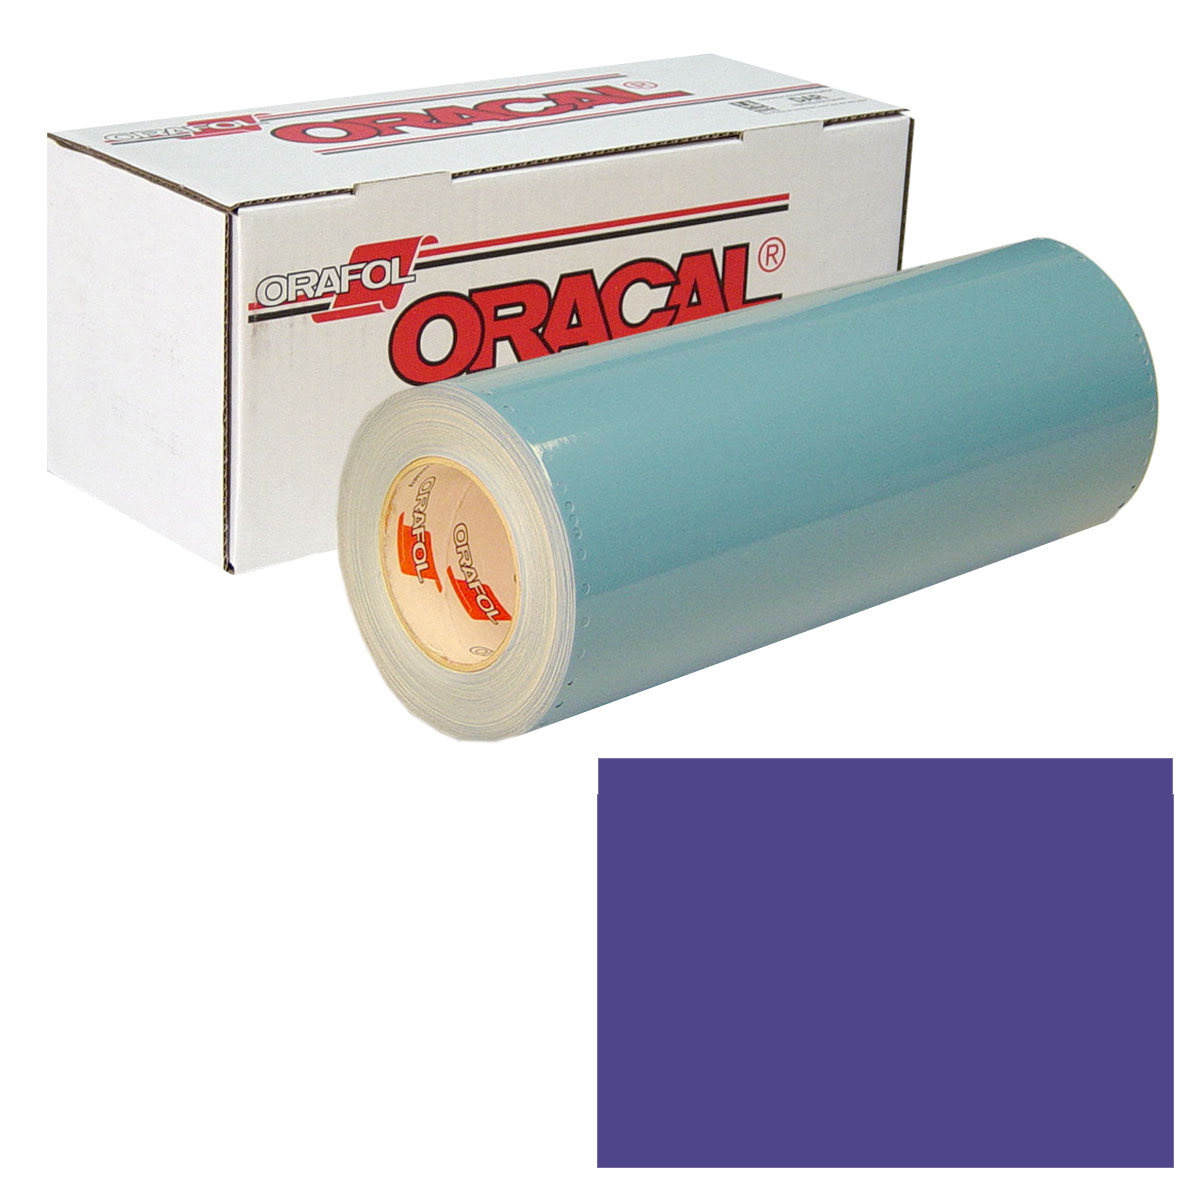 ORACAL 751 Unp 24in X 10yd 518 Steel Blue